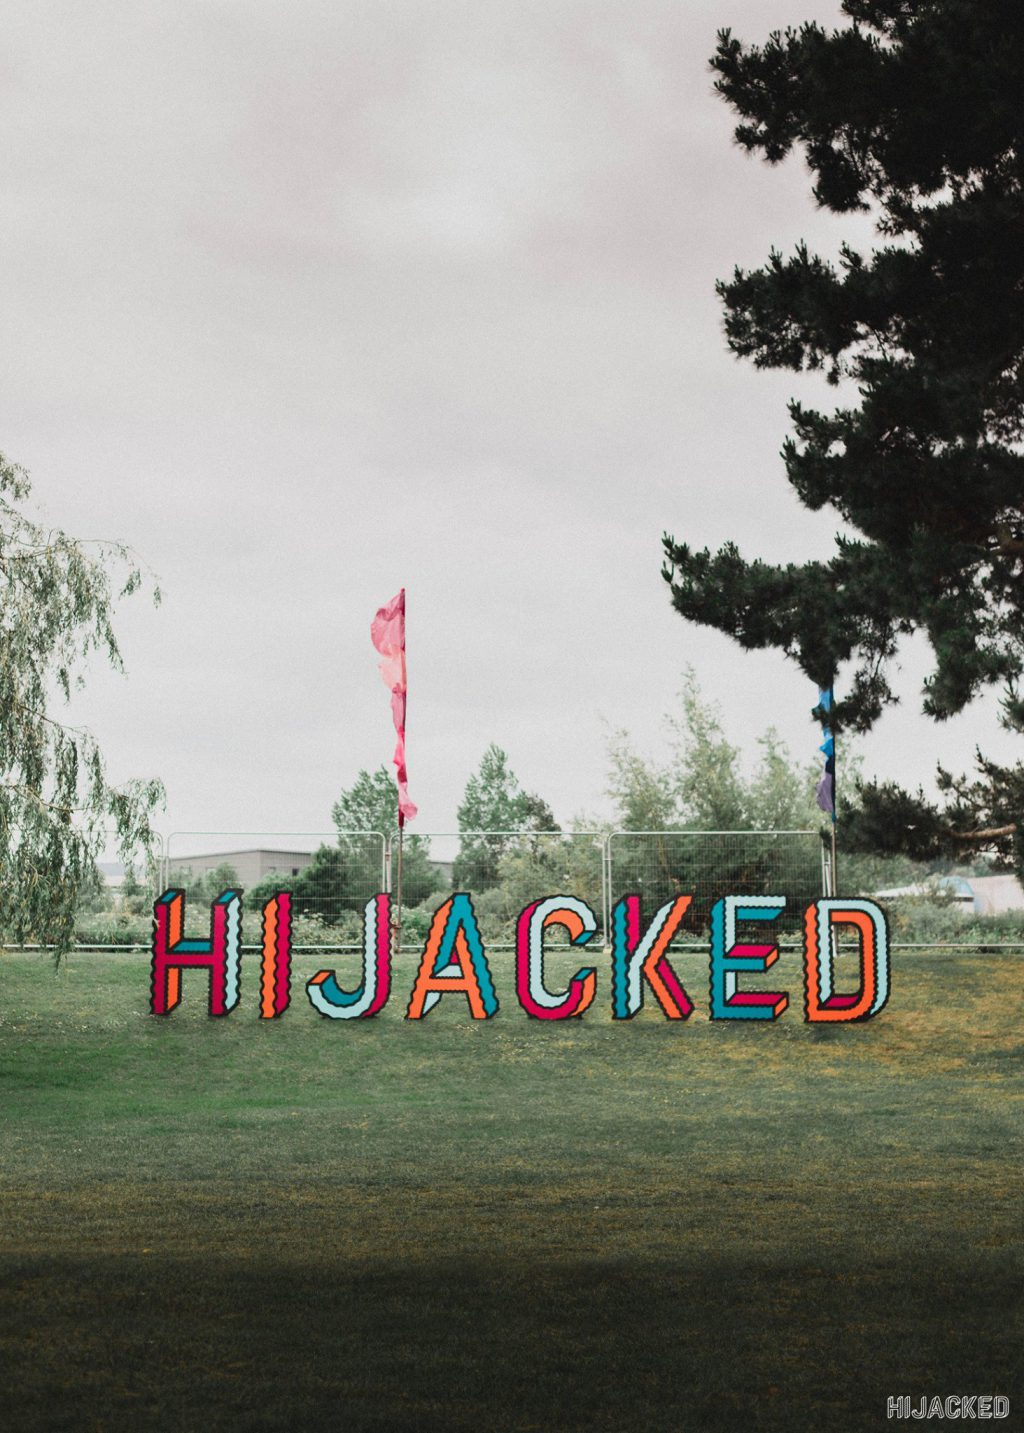 cut-out letters at the festival ground